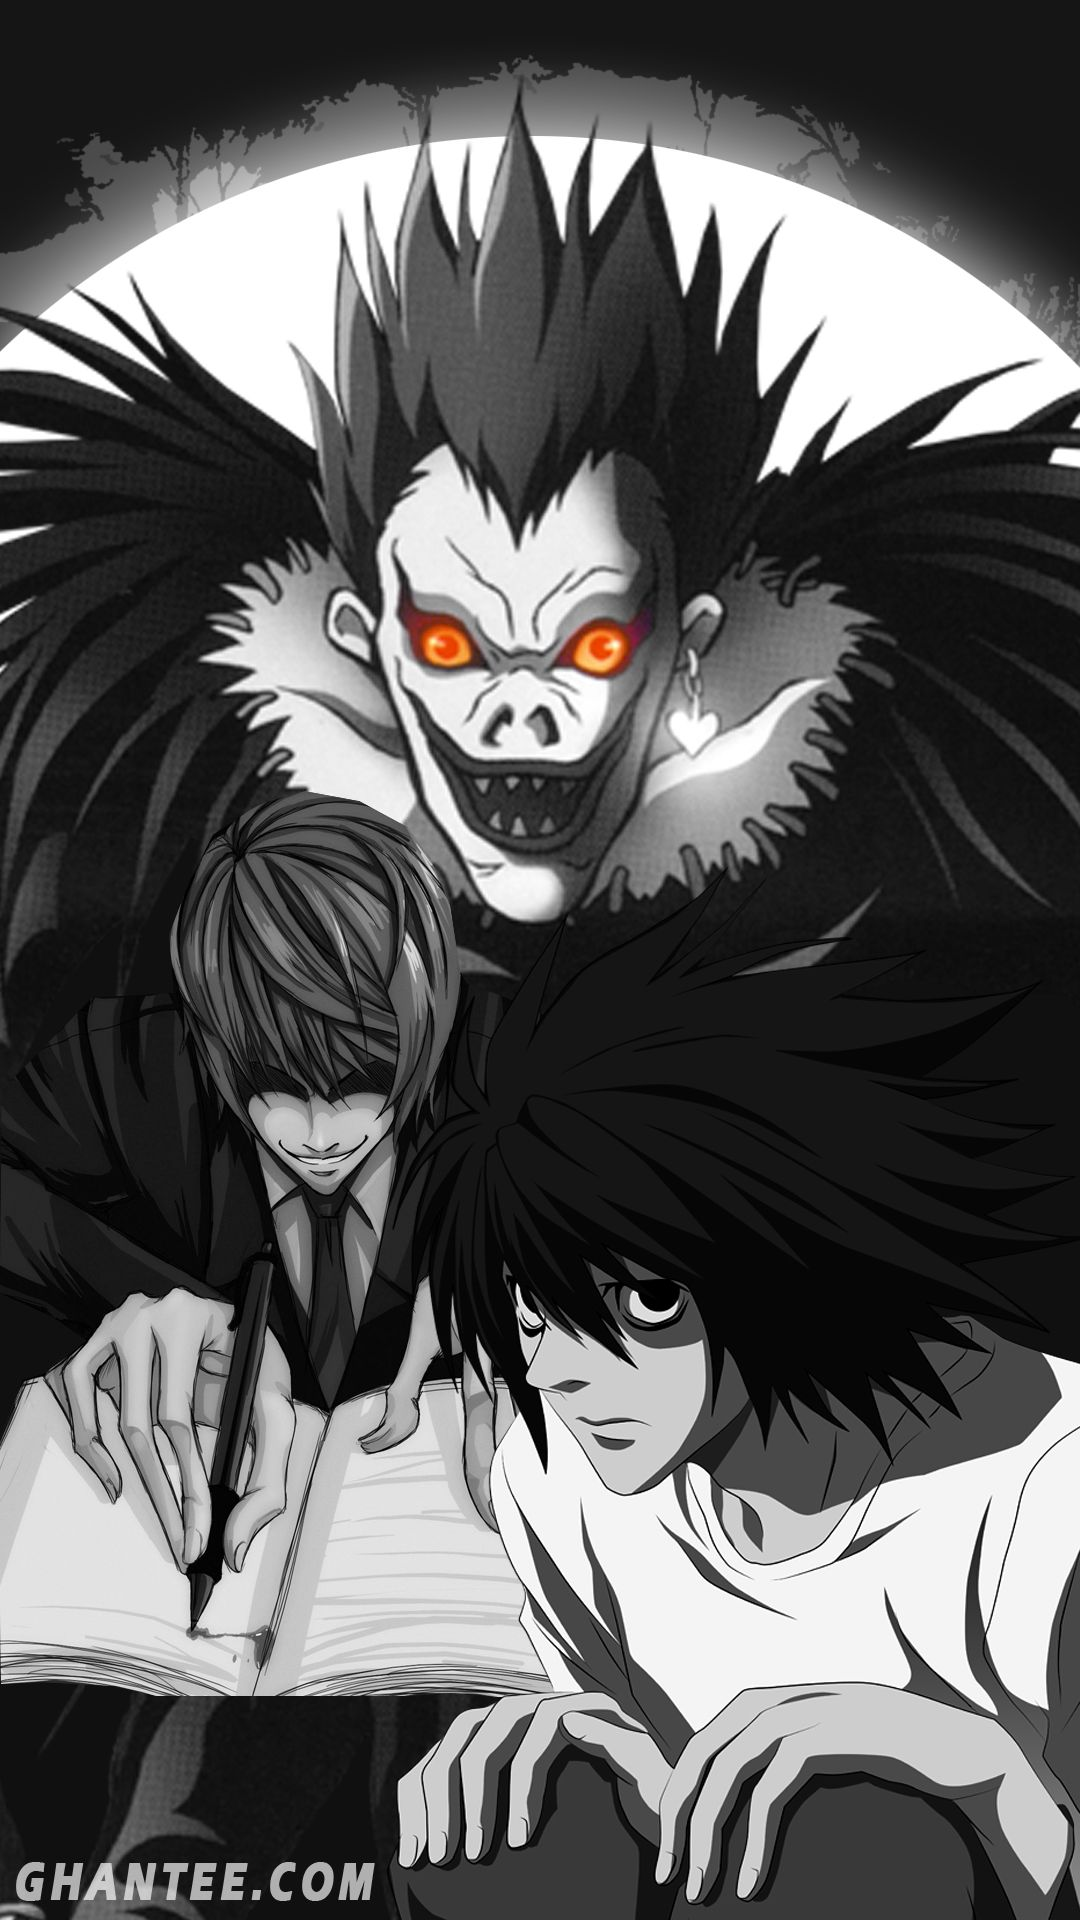 Pin On Ghantee Wallpapers Death note anime hd wallpaper